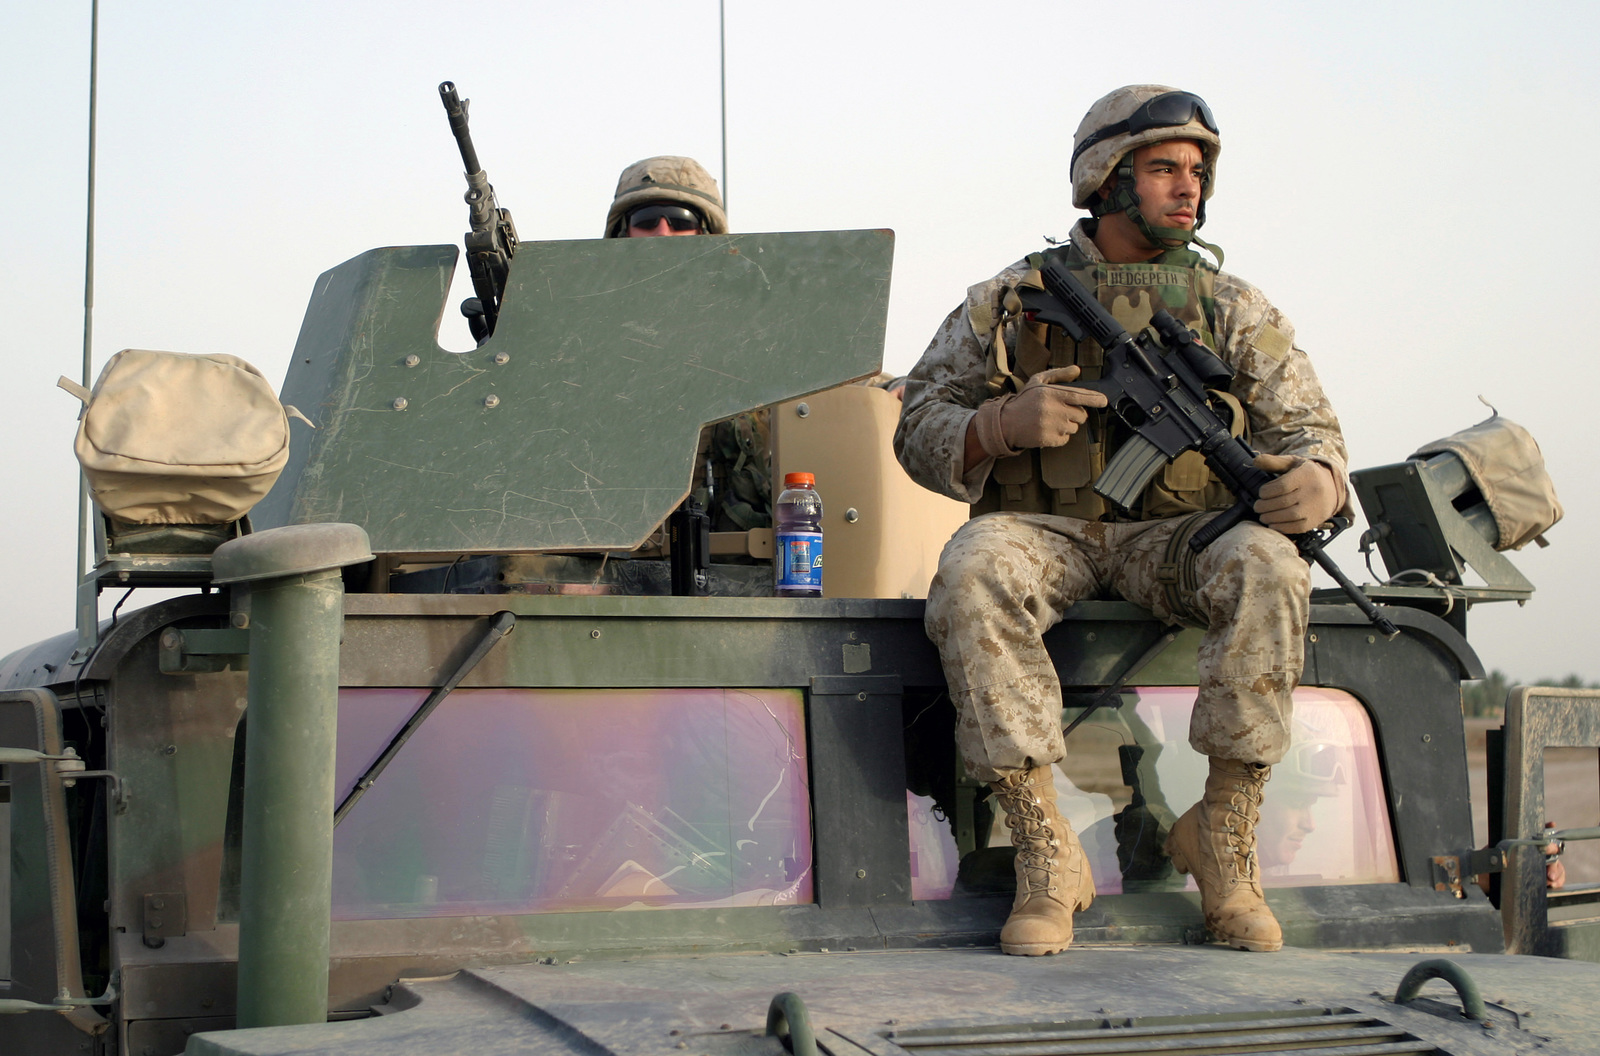 US Marine Corps (USMC) Corporal Sean Adcox (left), mans the 7.62mm M240G machine gun and USMC Sergeant (SGT) Eddie Hedgepeth, carries his 5.56mm M4 Carbine as the sit atop their up armored High-Mobility Multipurpose Wheeled Vehicle (HMMWV). The Marines both are assigned to 2nd Division, Force Service Support Group (FSSG), PSD Platoon, and are providing security along Alternate Supply Route (ASR) Boston, located in Fallujah, Iraq, during Operation IRAQI FREEDOM